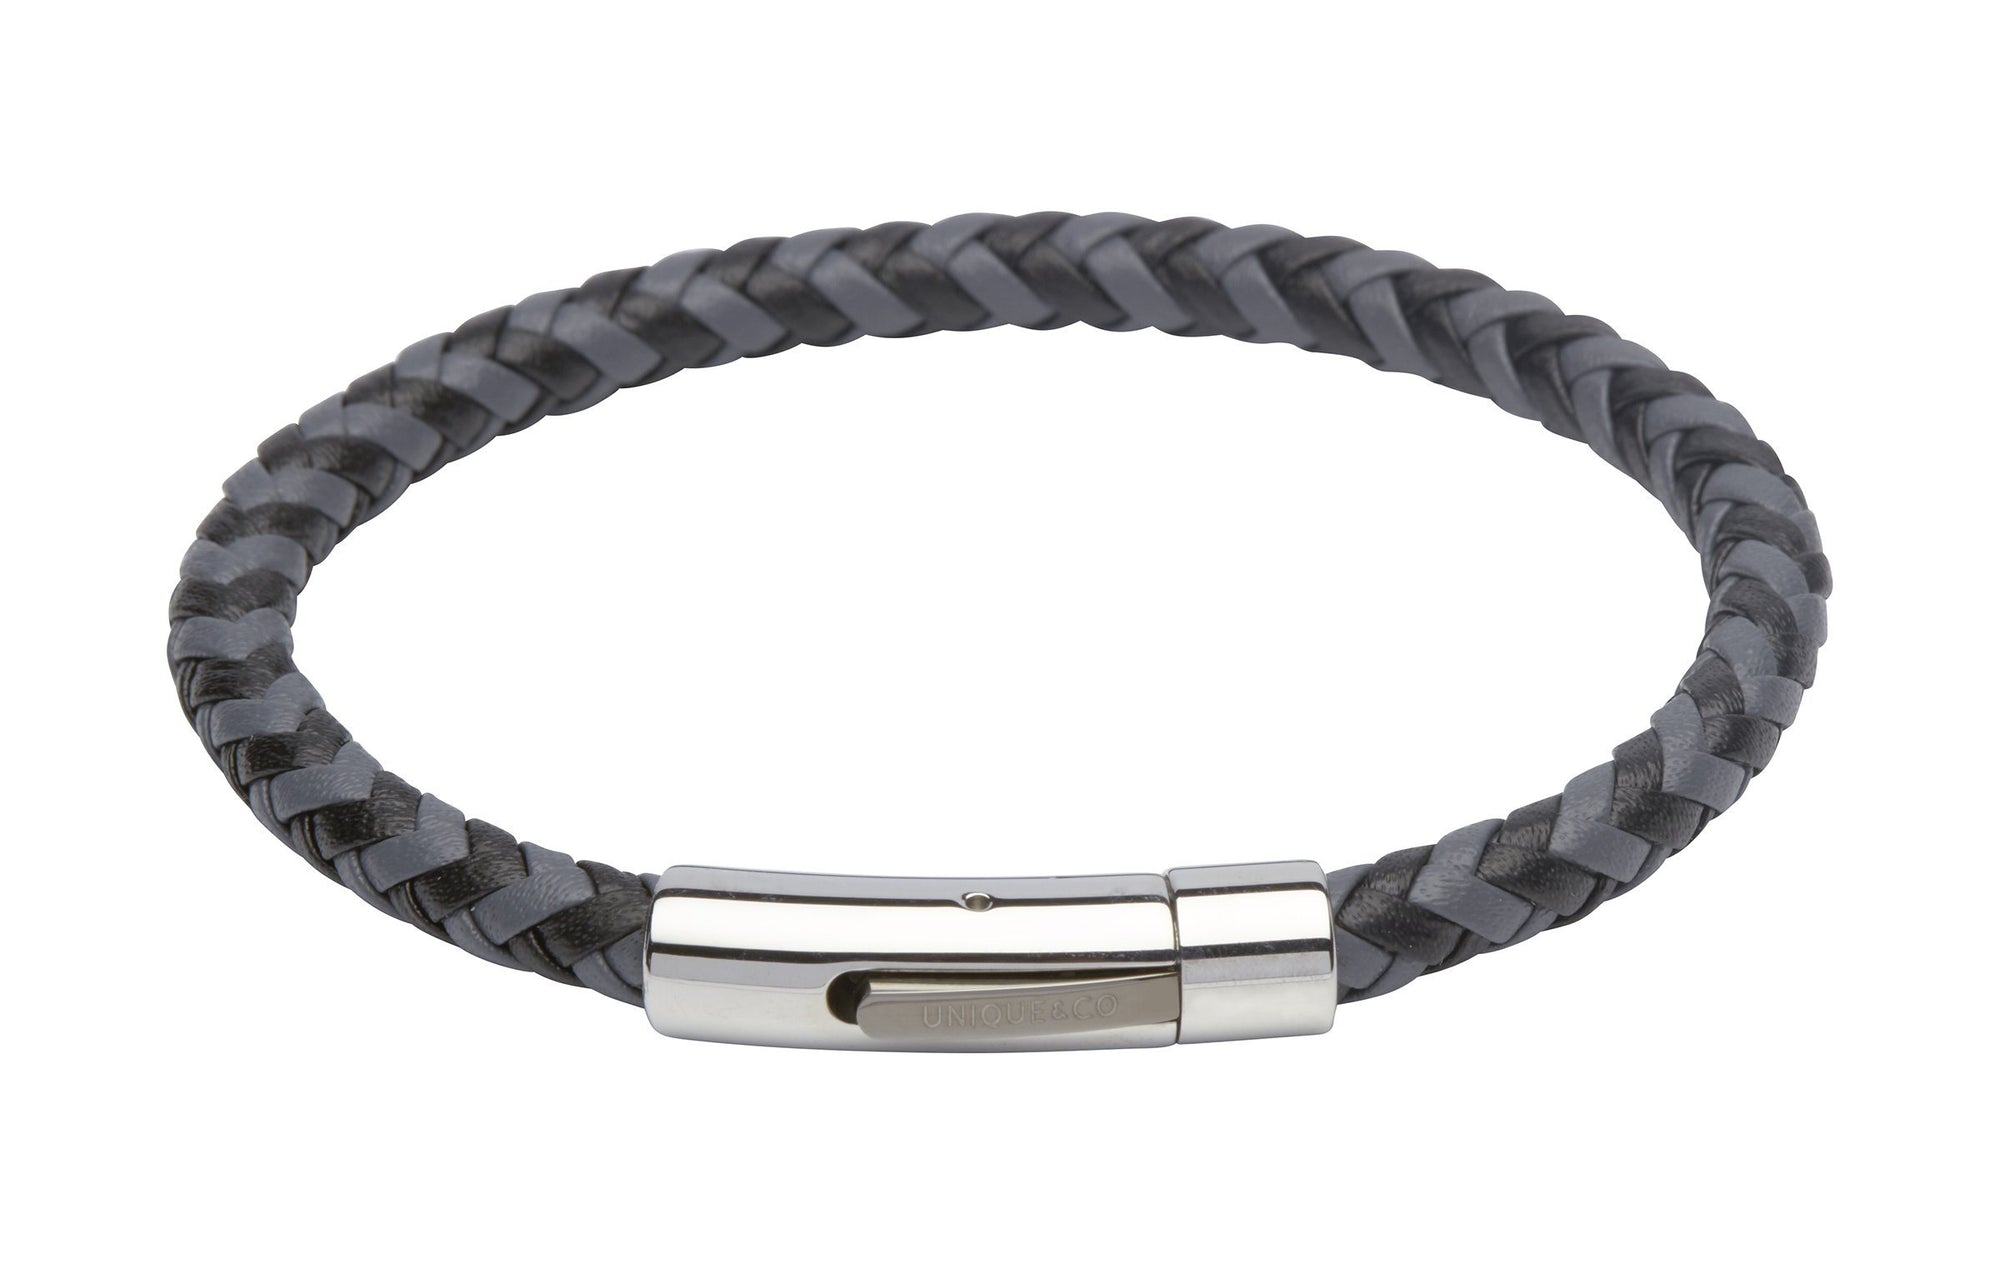 Mens Two-Colour Black and Grey Leather Woven Bracelet with stainless steel clasp